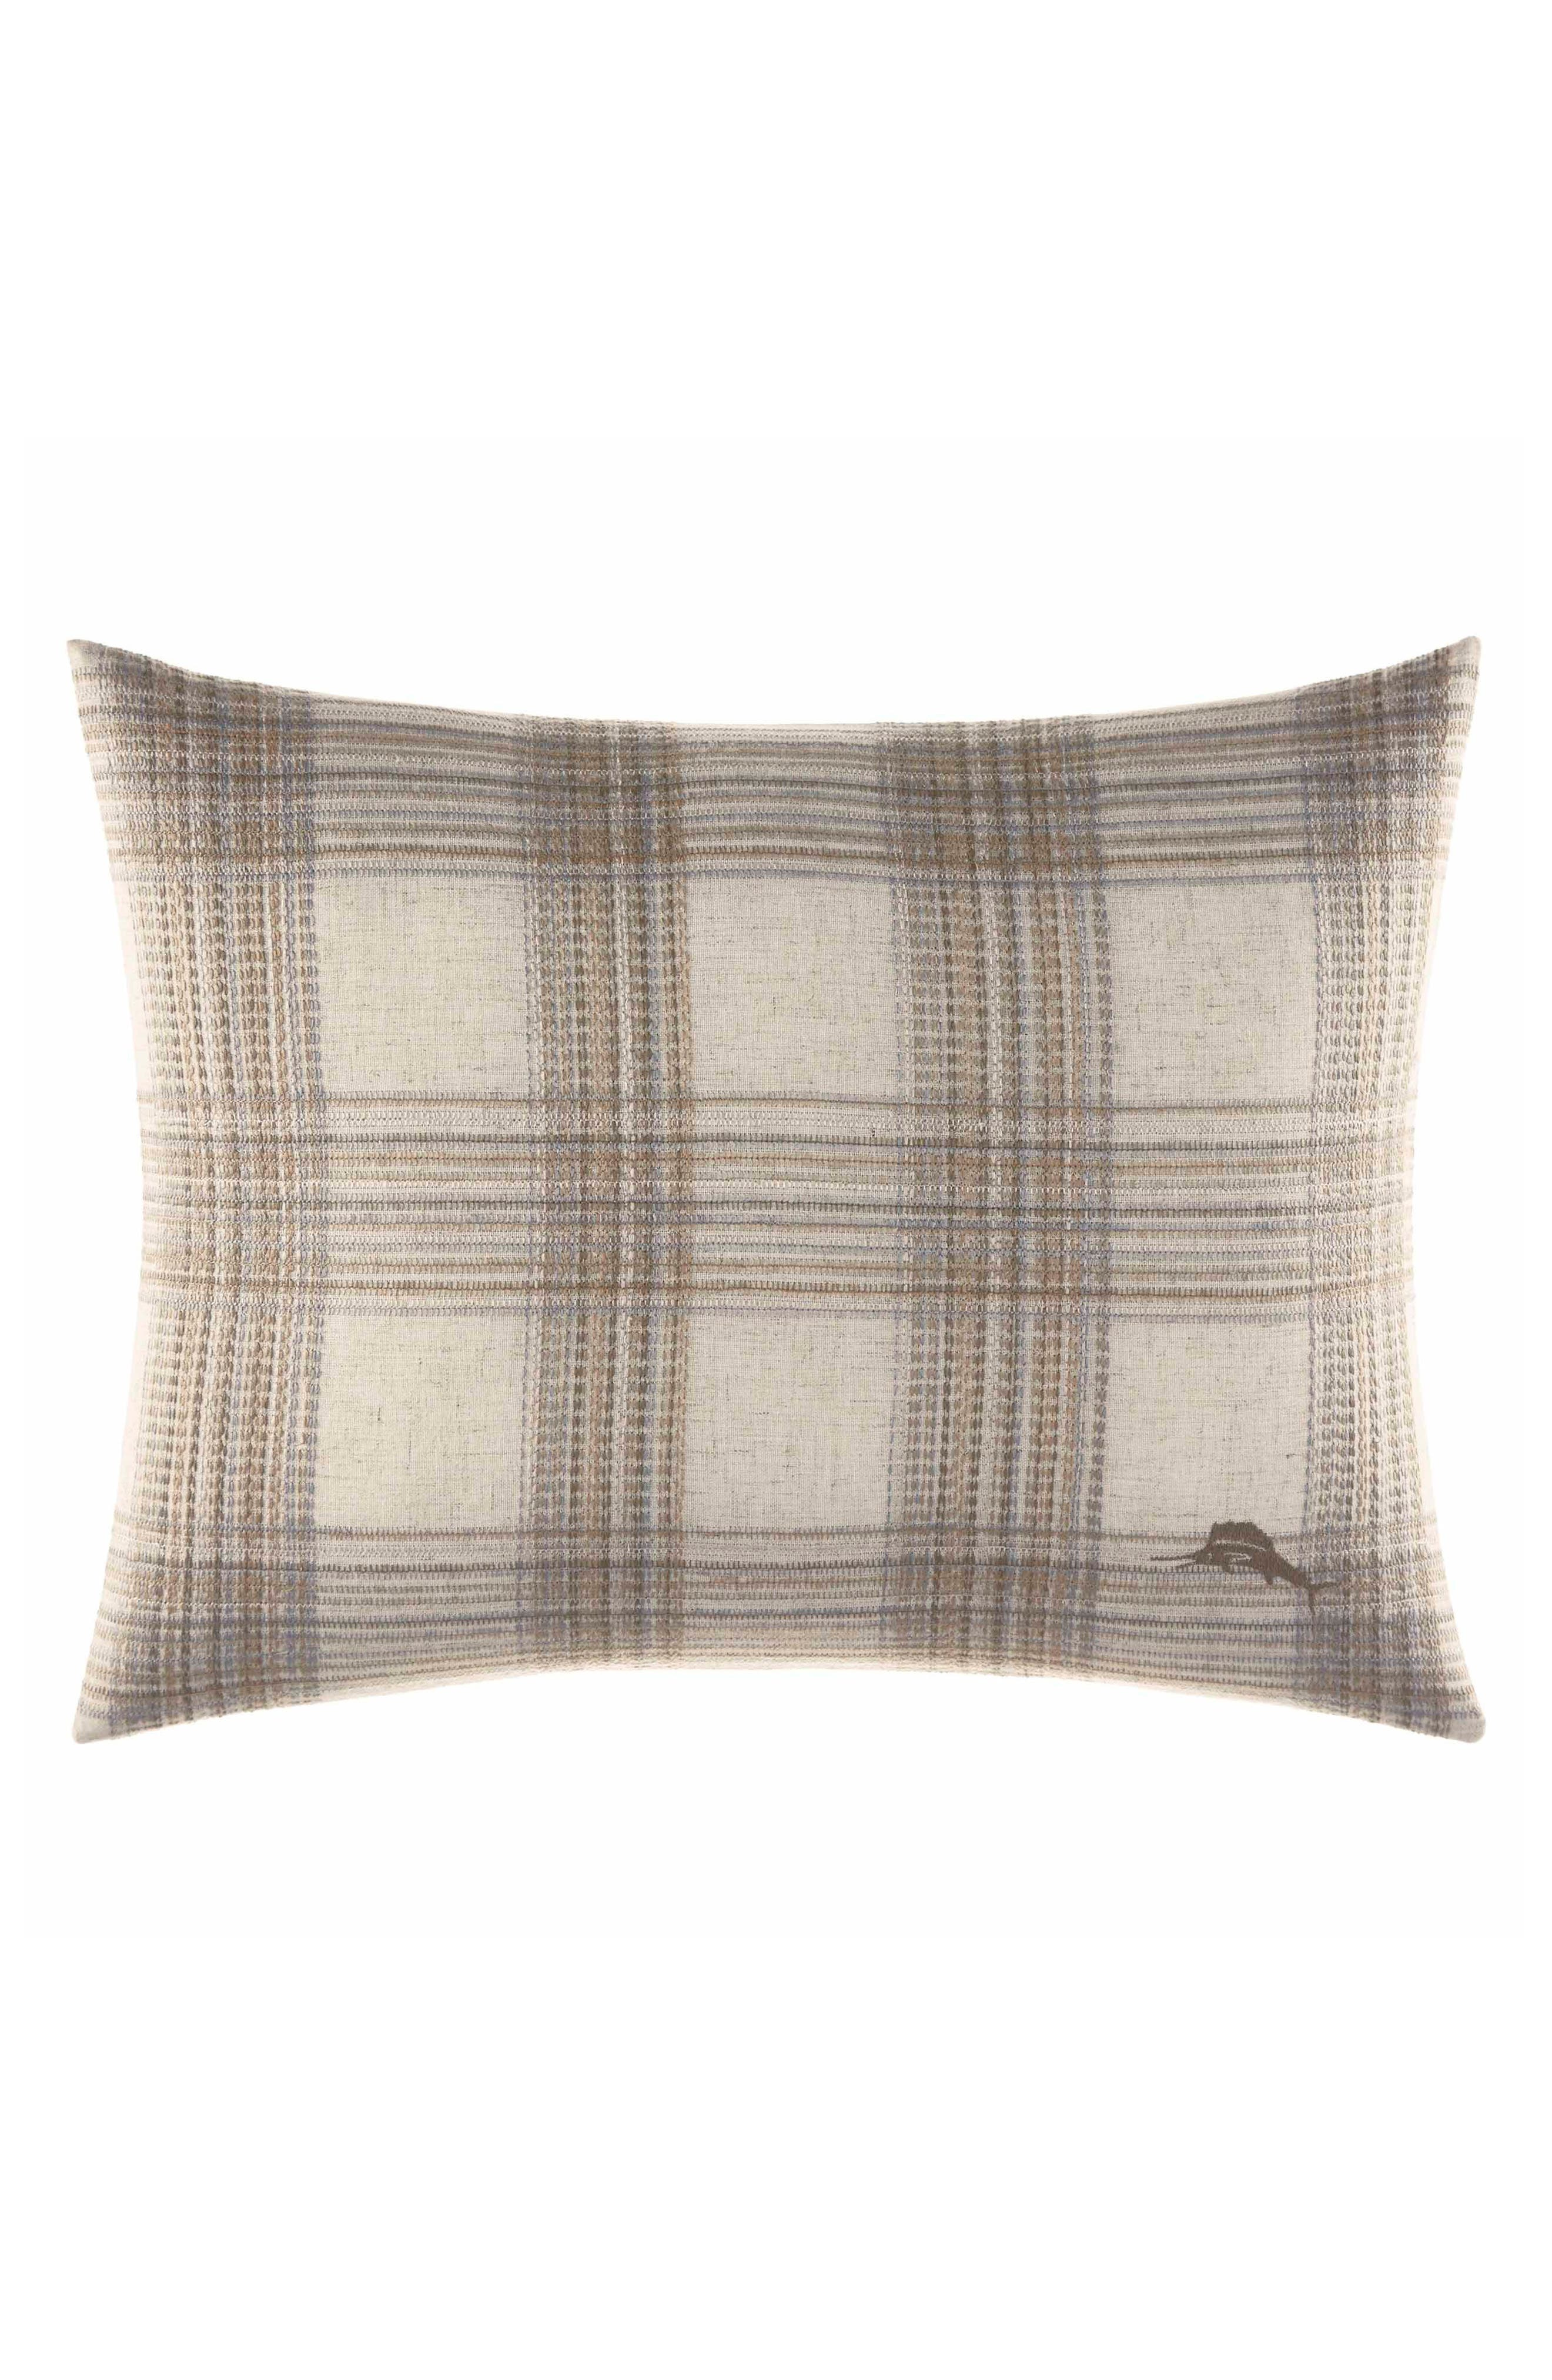 Alternate Image 1 Selected - Tommy Bahama Raffia Palms Woven Pillow